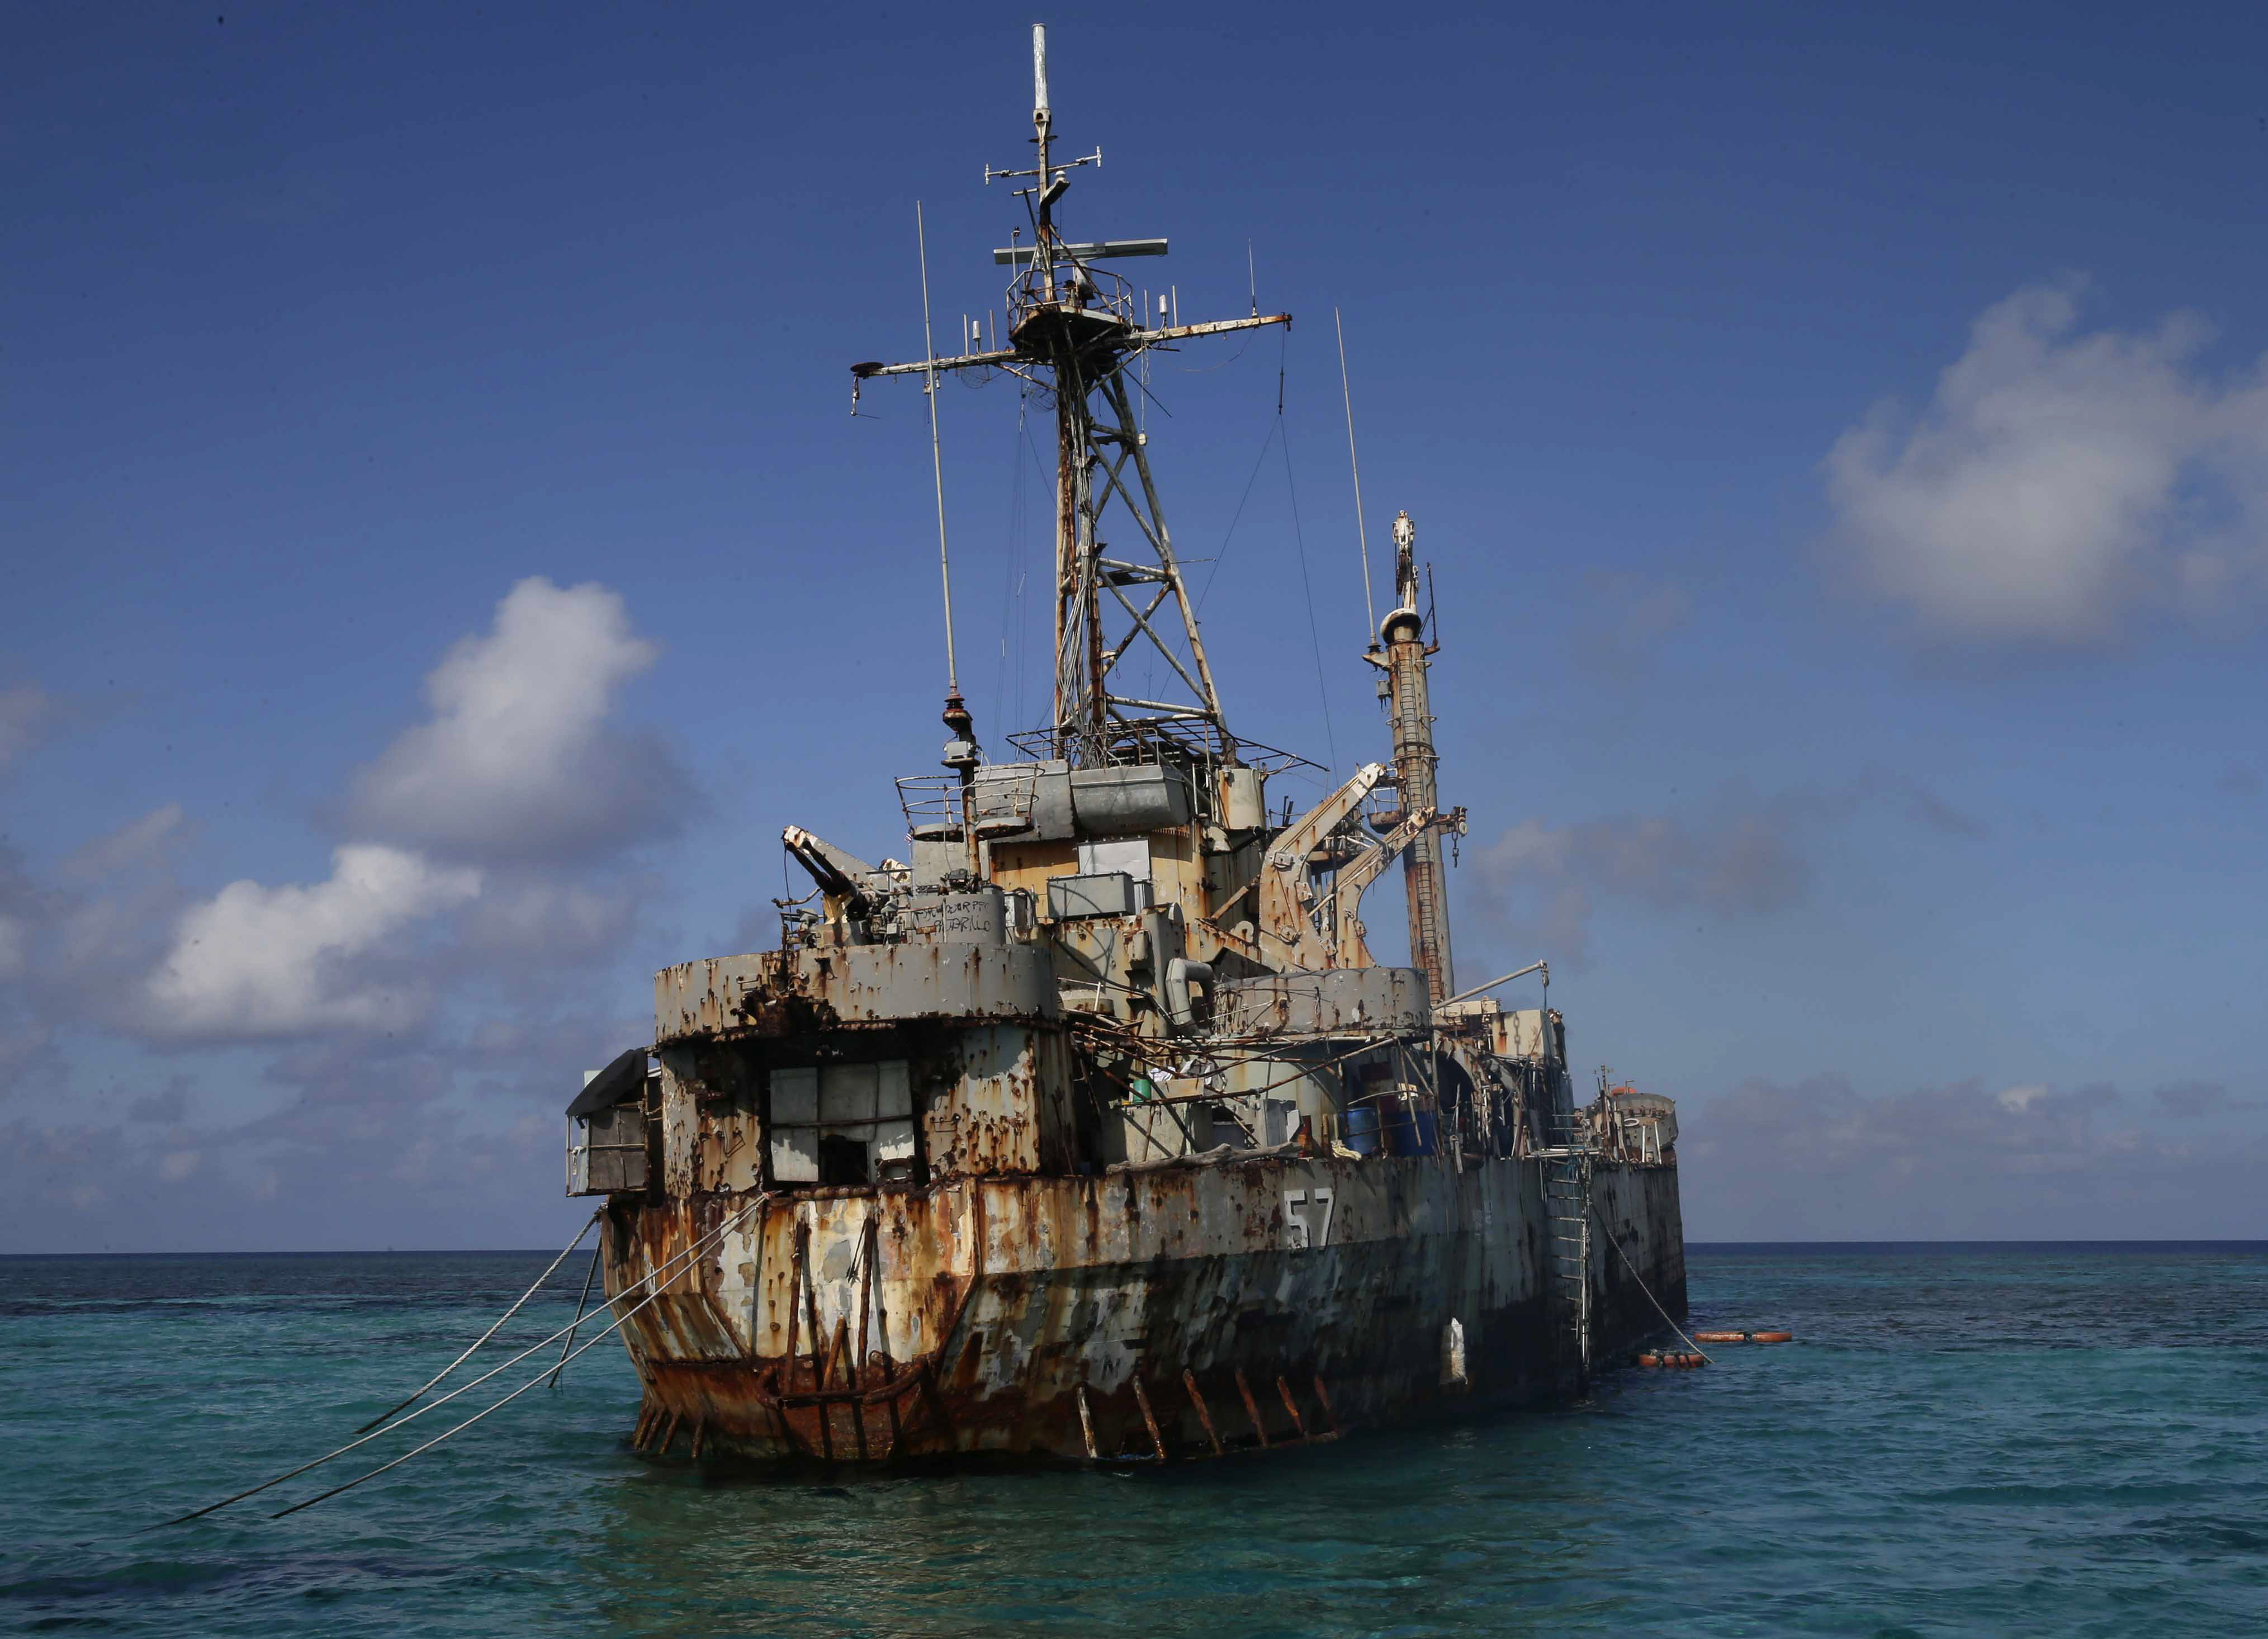 China warns Philippines over repairs to grounded ship on Spratly reef outpost